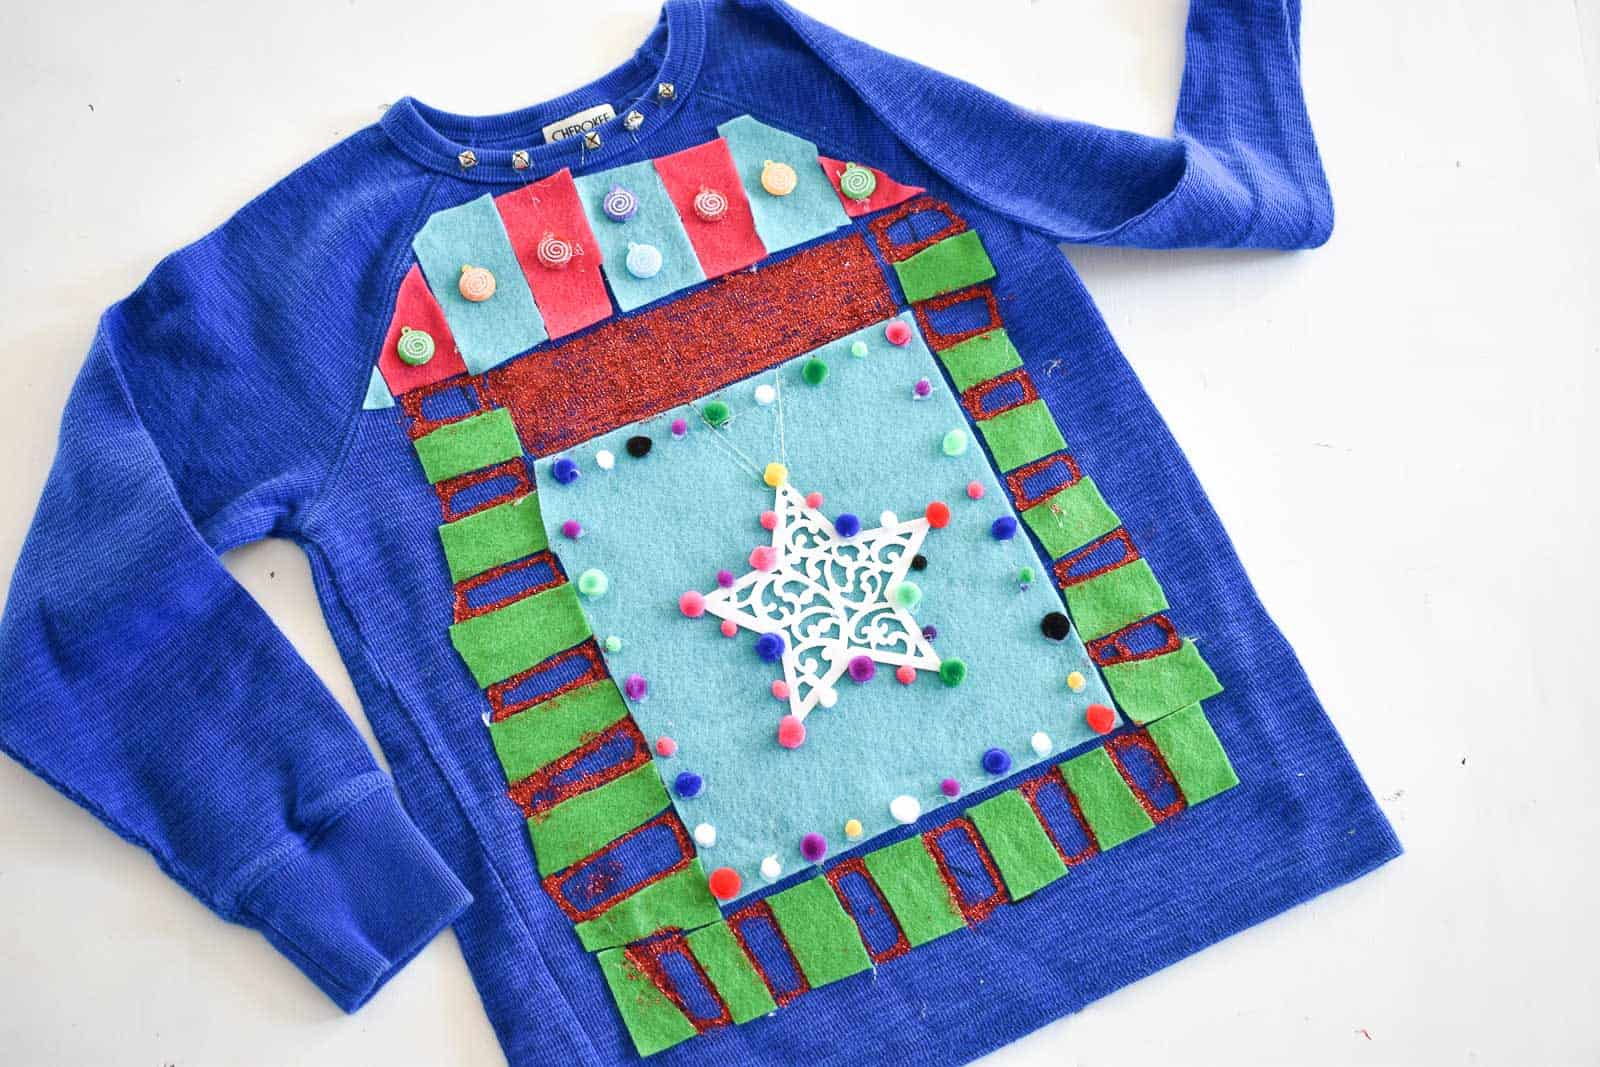 Lummy Make Your Own Ugly Sweater Make Your Own Ugly Sweater At House Diy Ugly Sweaters Diy Ugly Sweater Trophy inspiration Diy Ugly Christmas Sweater